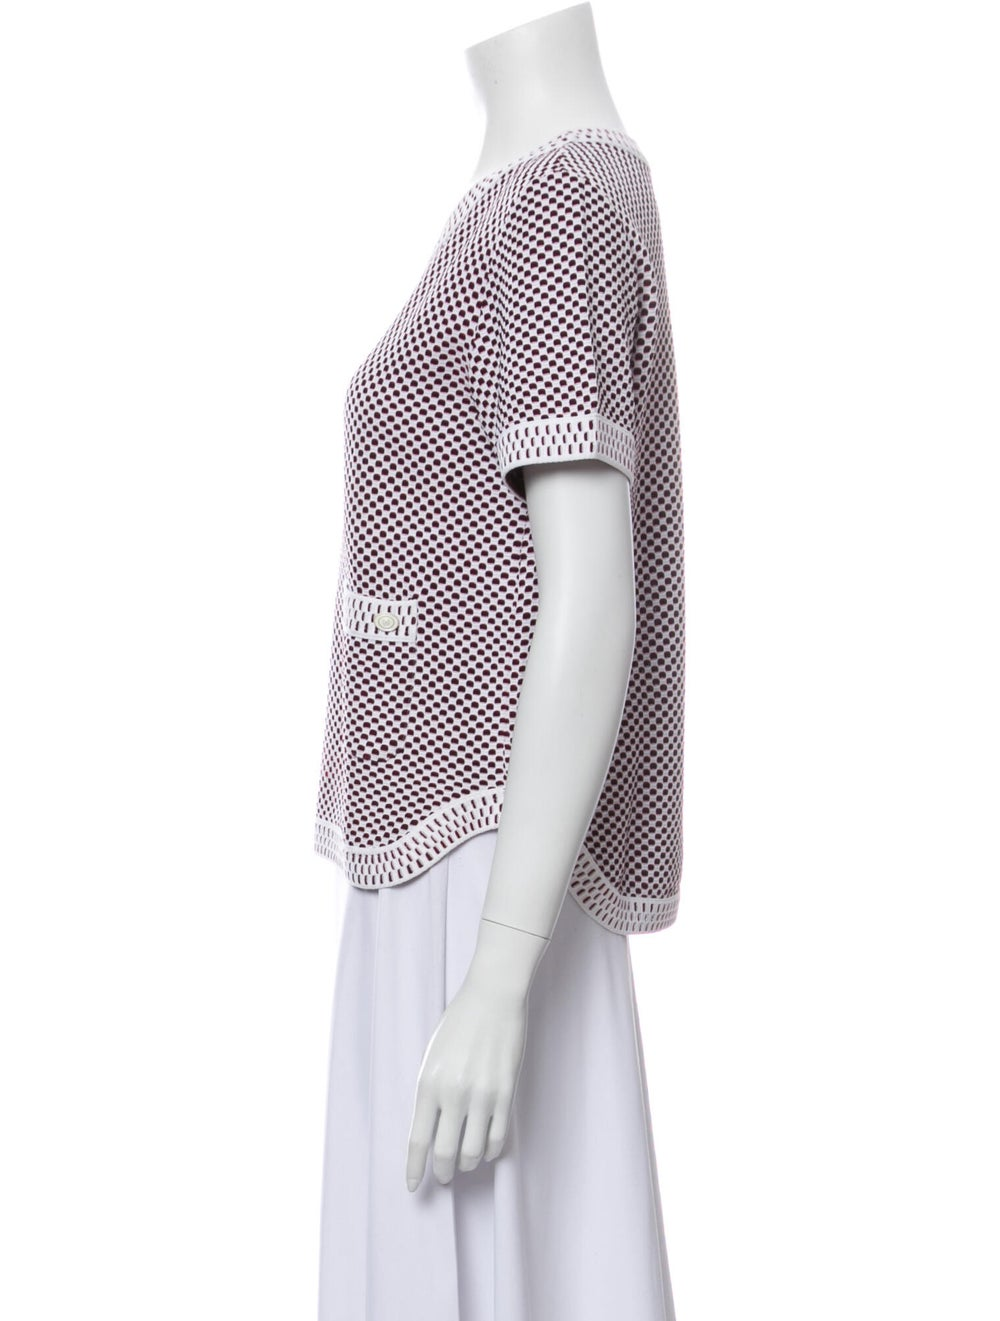 Chanel 2014 Short Sleeve Knit Top T-Shirt - image 2